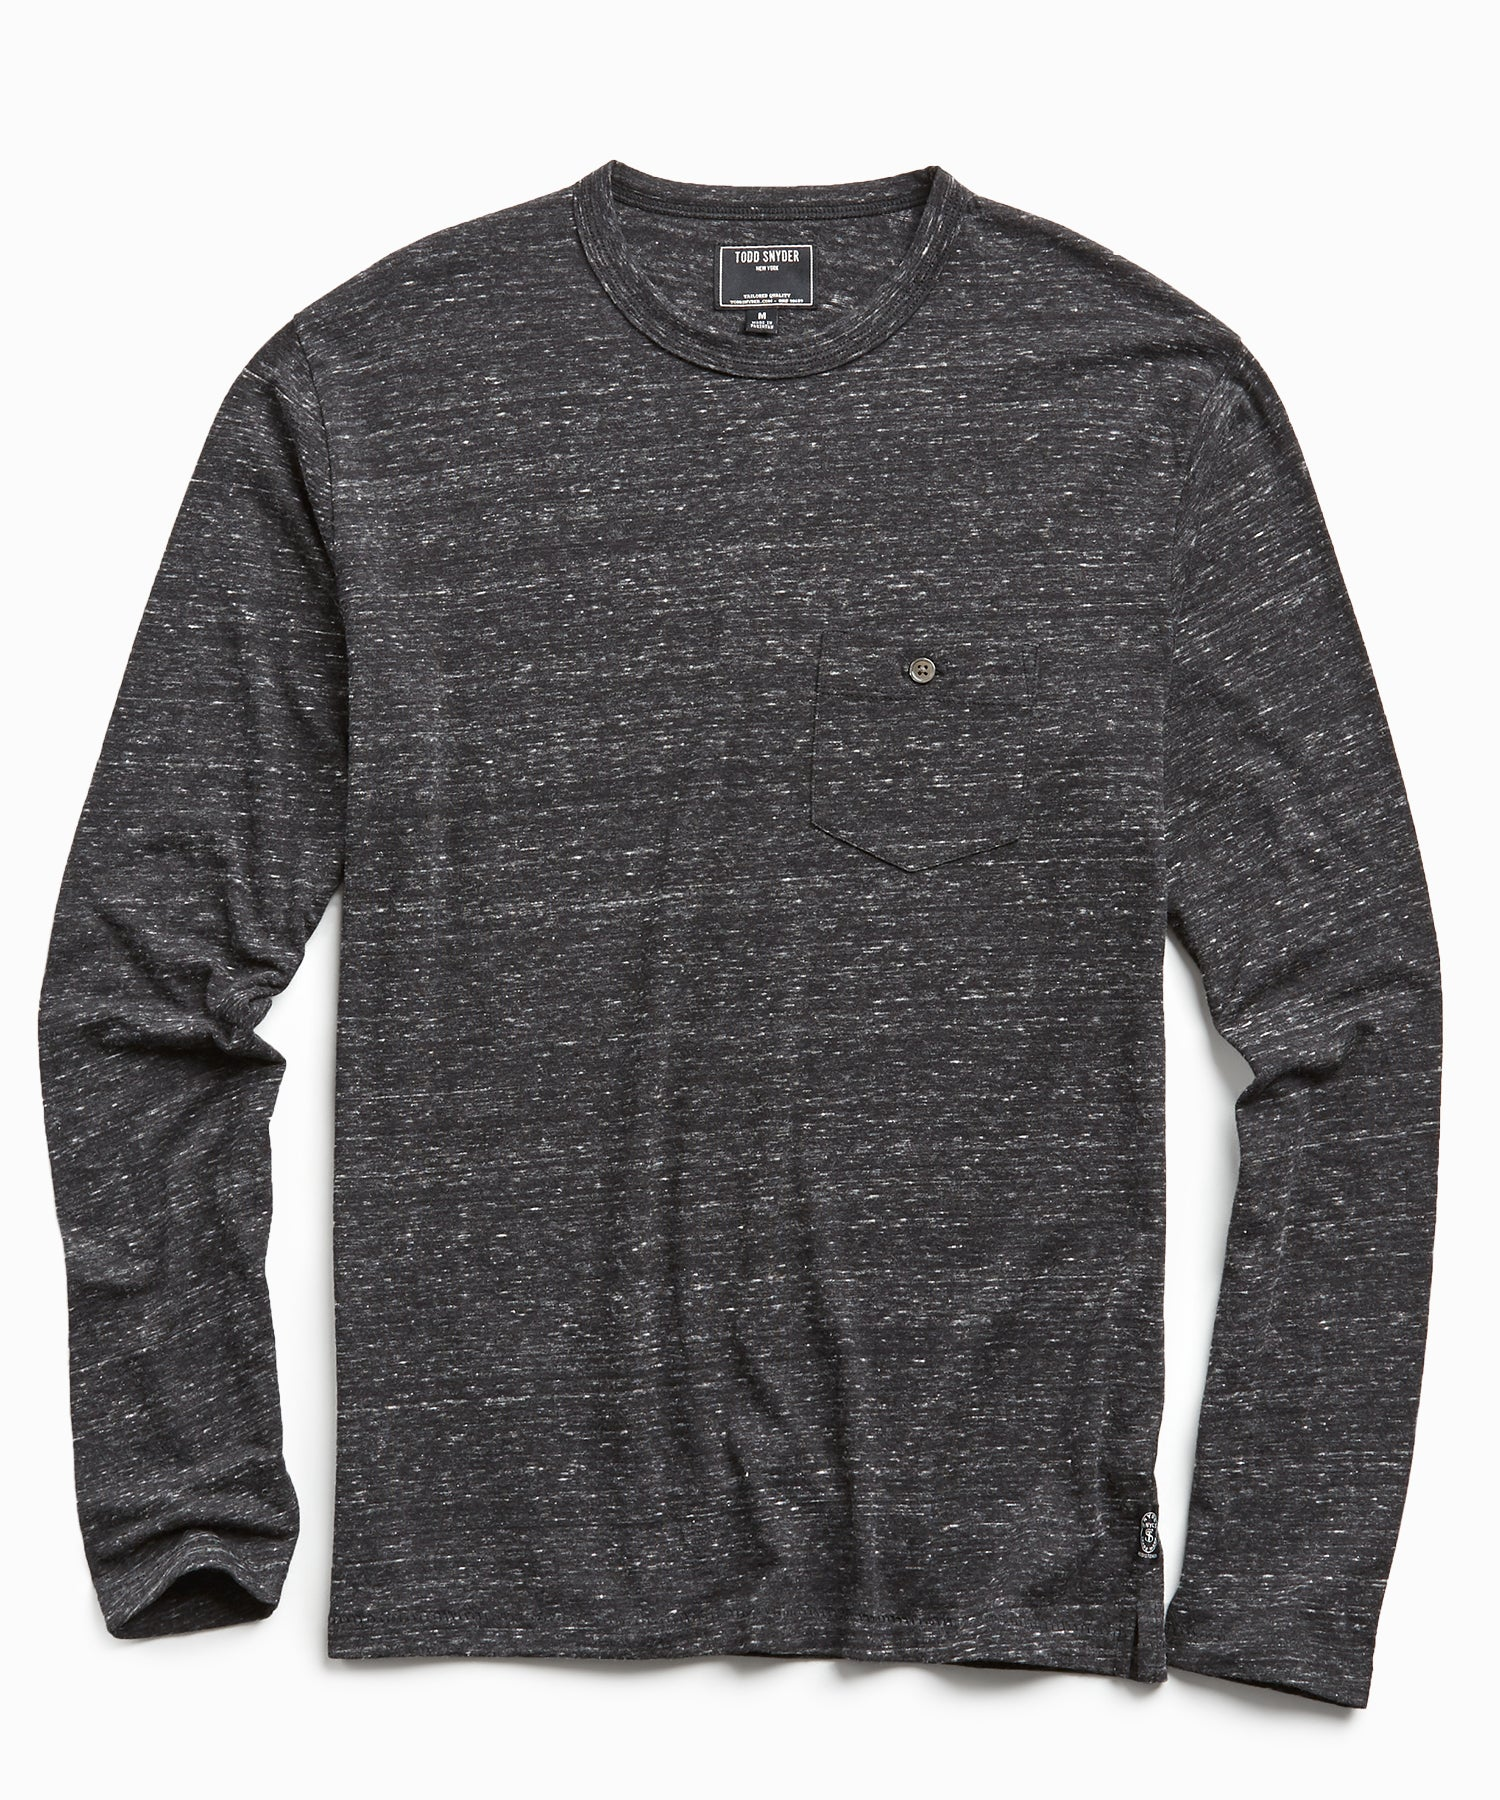 Long Sleeve Heather Tee in Black